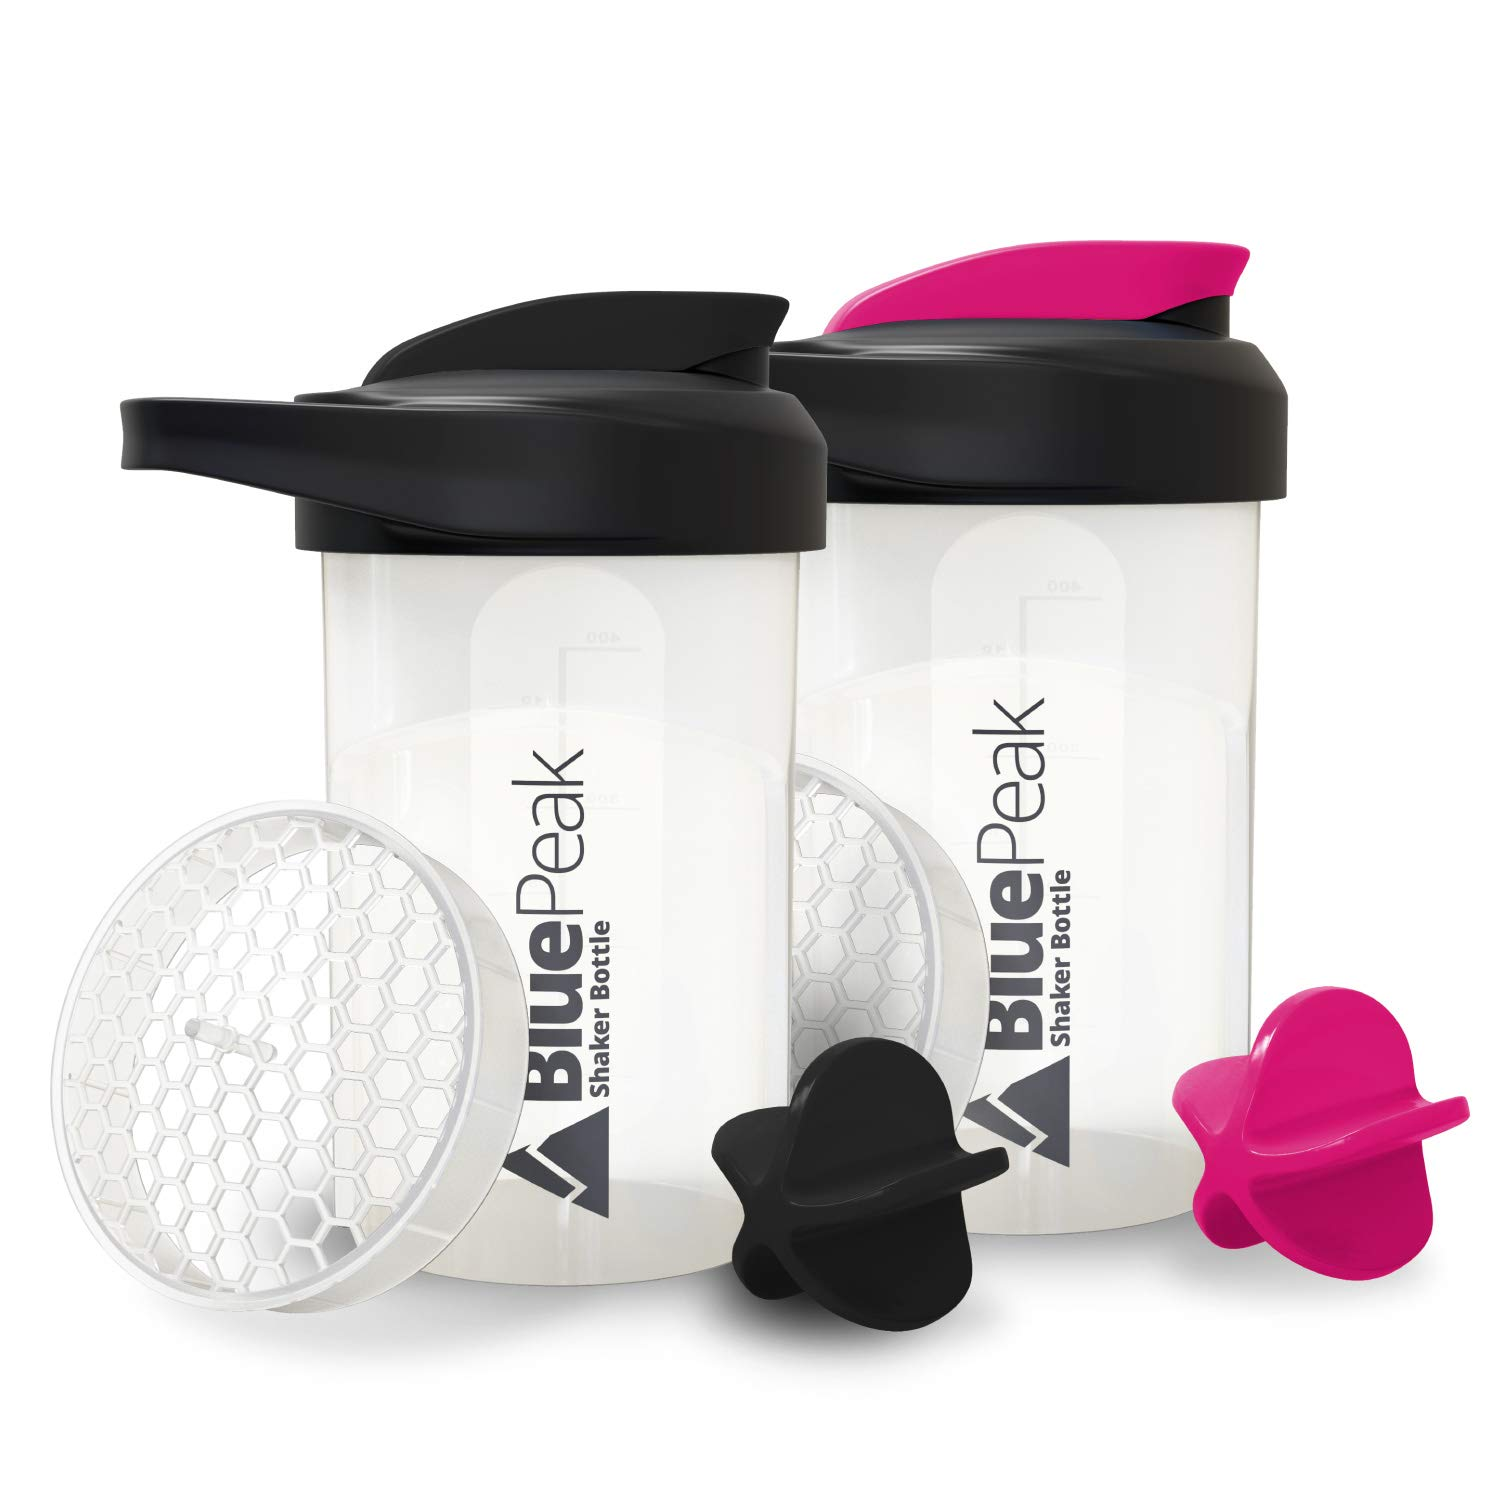 BluePeak Protein Shaker Bottle 20-Ounce, with Dual Mixing Technology. BPA Free, Shaker Balls & Mixing Grids Included (Black & Pink)